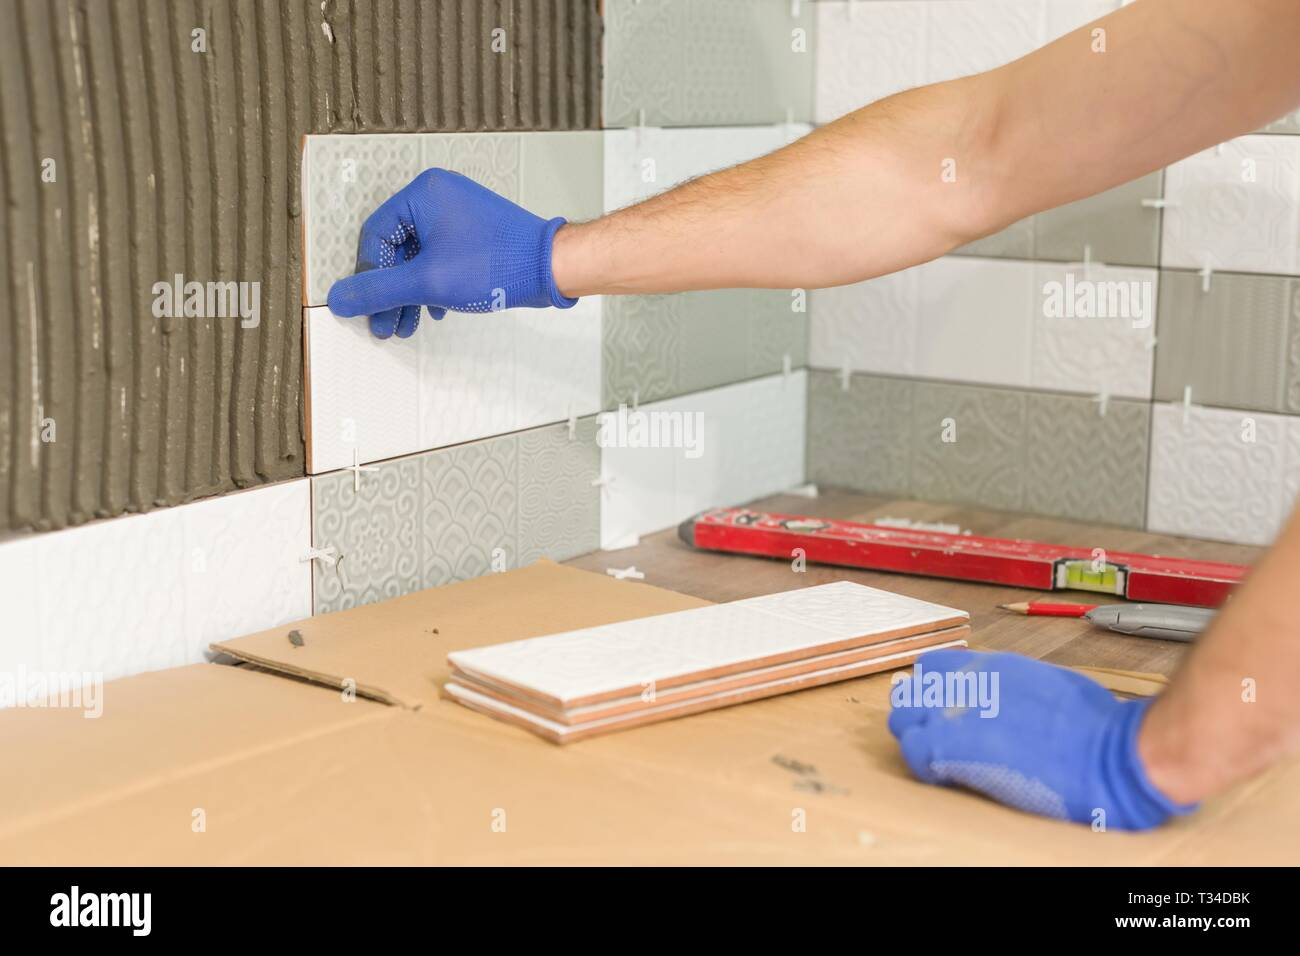 https www alamy com closeup of tiler hand laying ceramic tile on wall in kitchen renovation repair construction image242887447 html